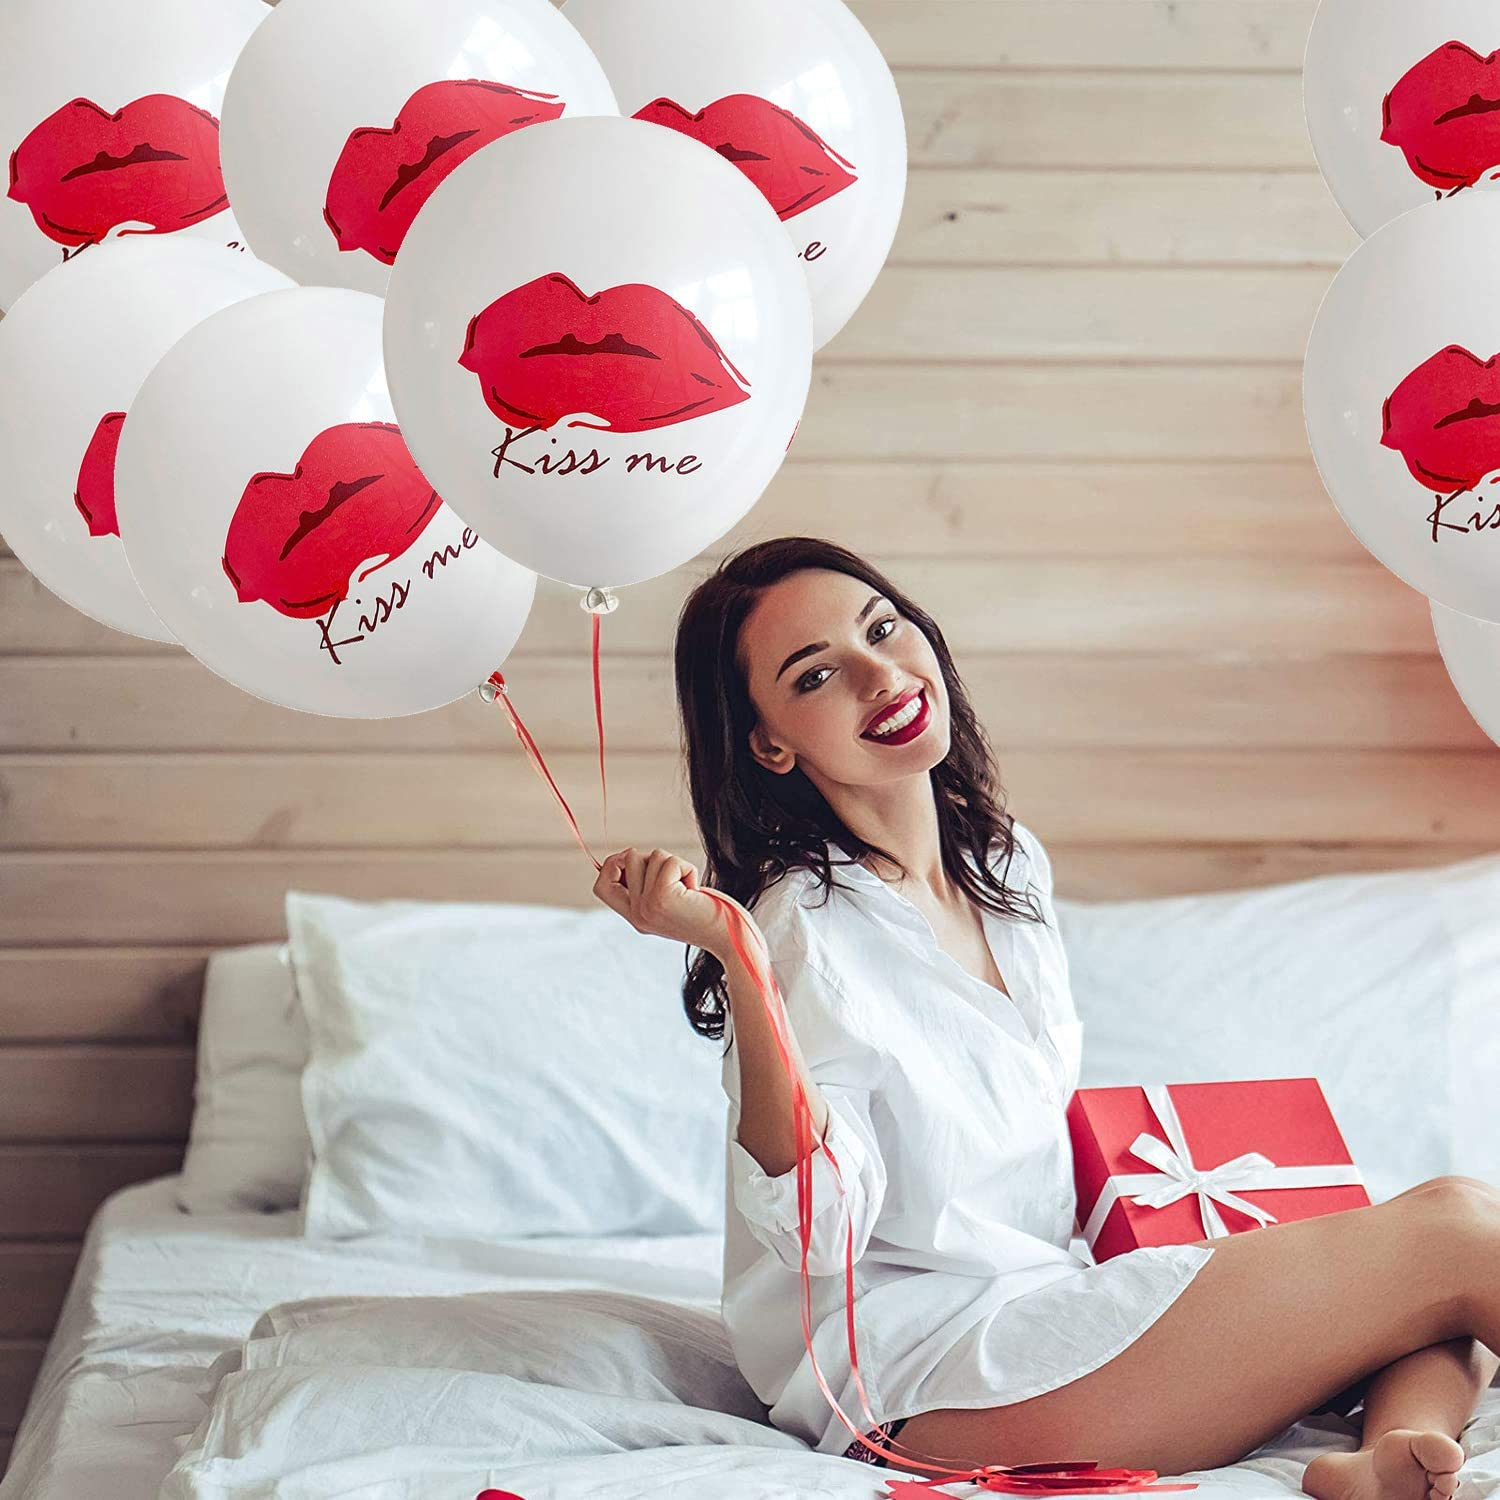 Kiss Red Lip Lipstick Balloons Kit,2 Pcs Lip-Kiss Shaped Mylar Foil Balloons and 20 Pcs Latex Red Lip Balloons for Valentines Day Decorations,Girls Day Beauty,Spa Party Supplies